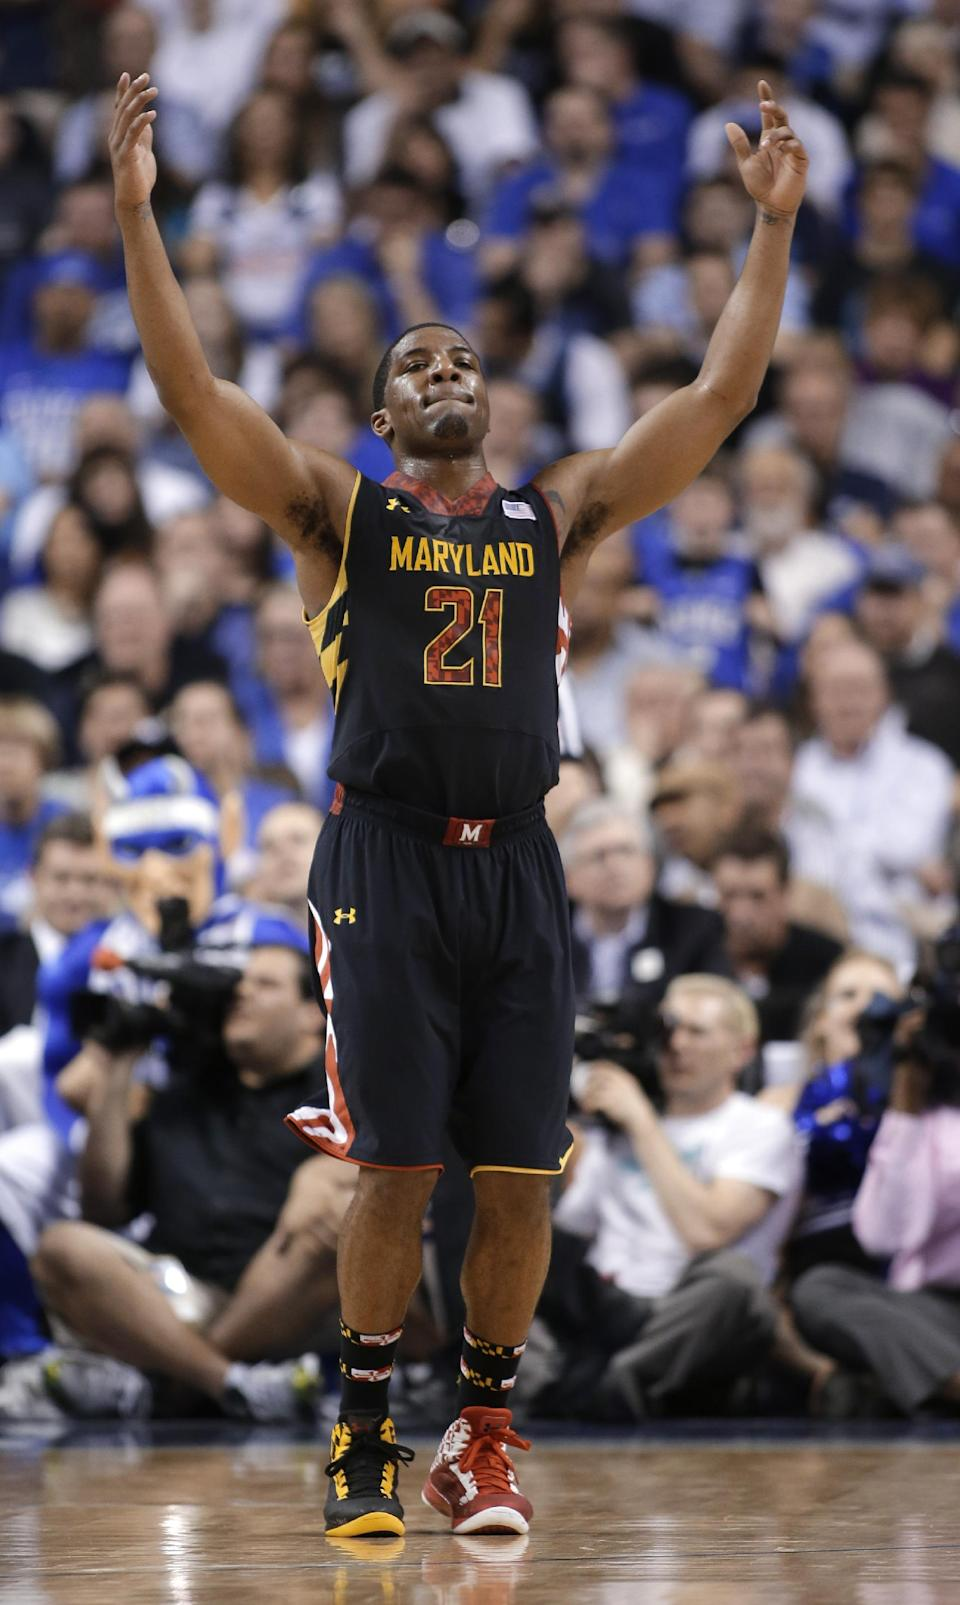 Maryland's Pe'Shon Howard gestures in the final seconds of an NCAA college basketball game against Duke at the Atlantic Coast Conference men's tournament in Greensboro, N.C., Friday, March 15, 2013. Maryland won 83-74. (AP Photo/Bob Leverone)